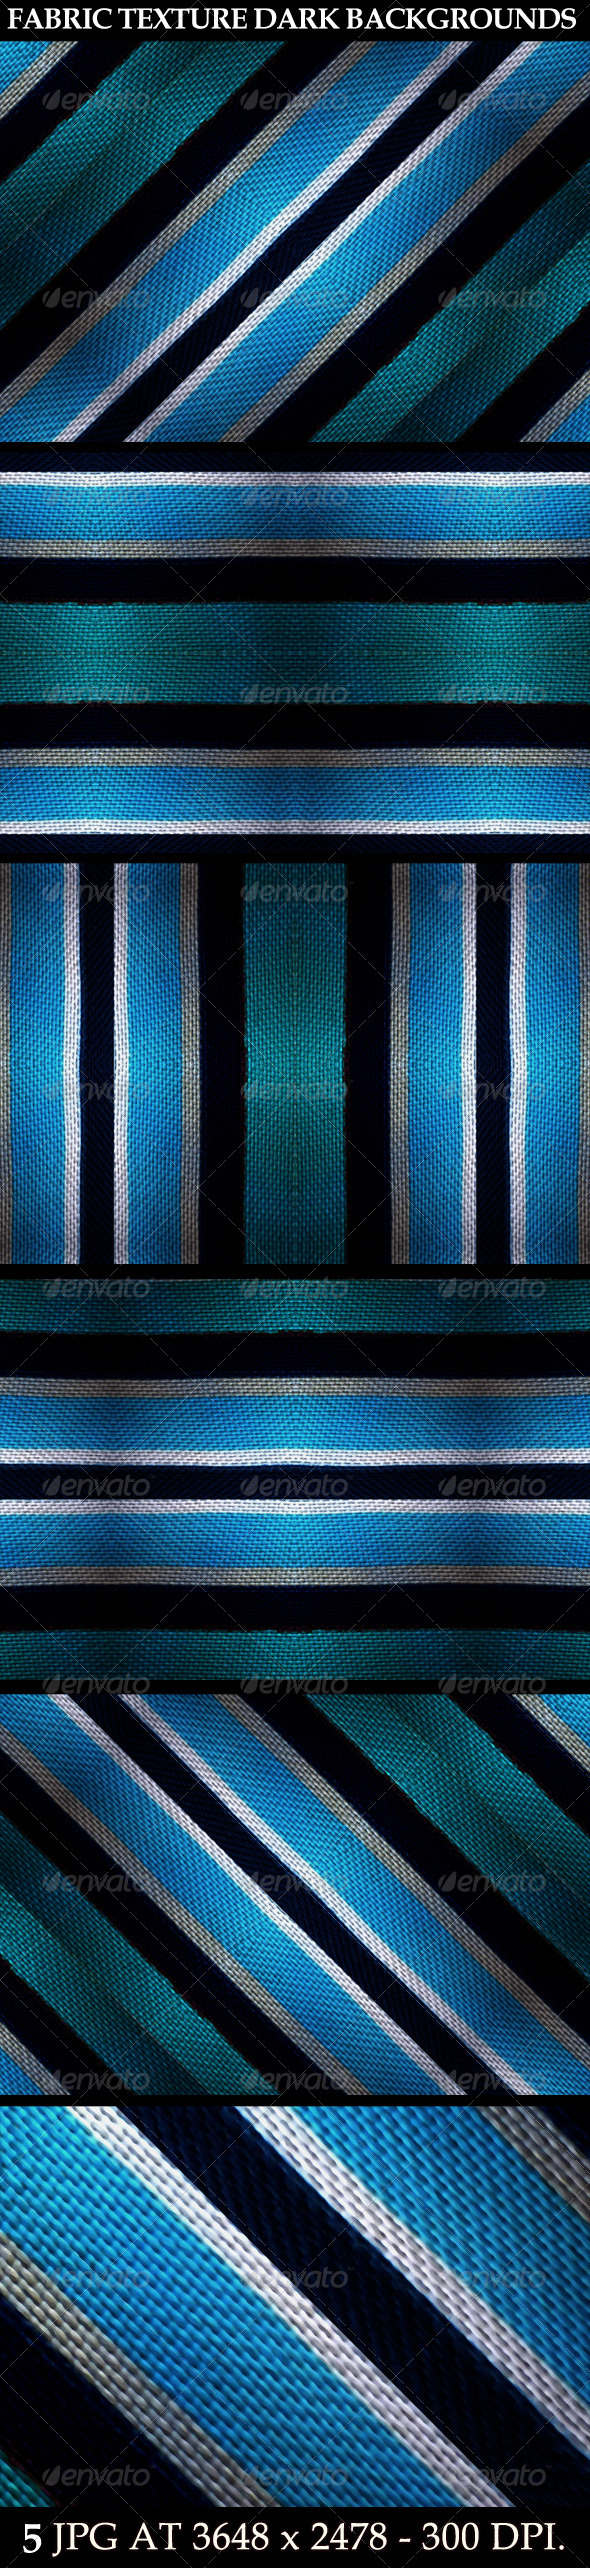 5 Fabric Texture Dark Backgrounds - Tech / Futuristic Backgrounds